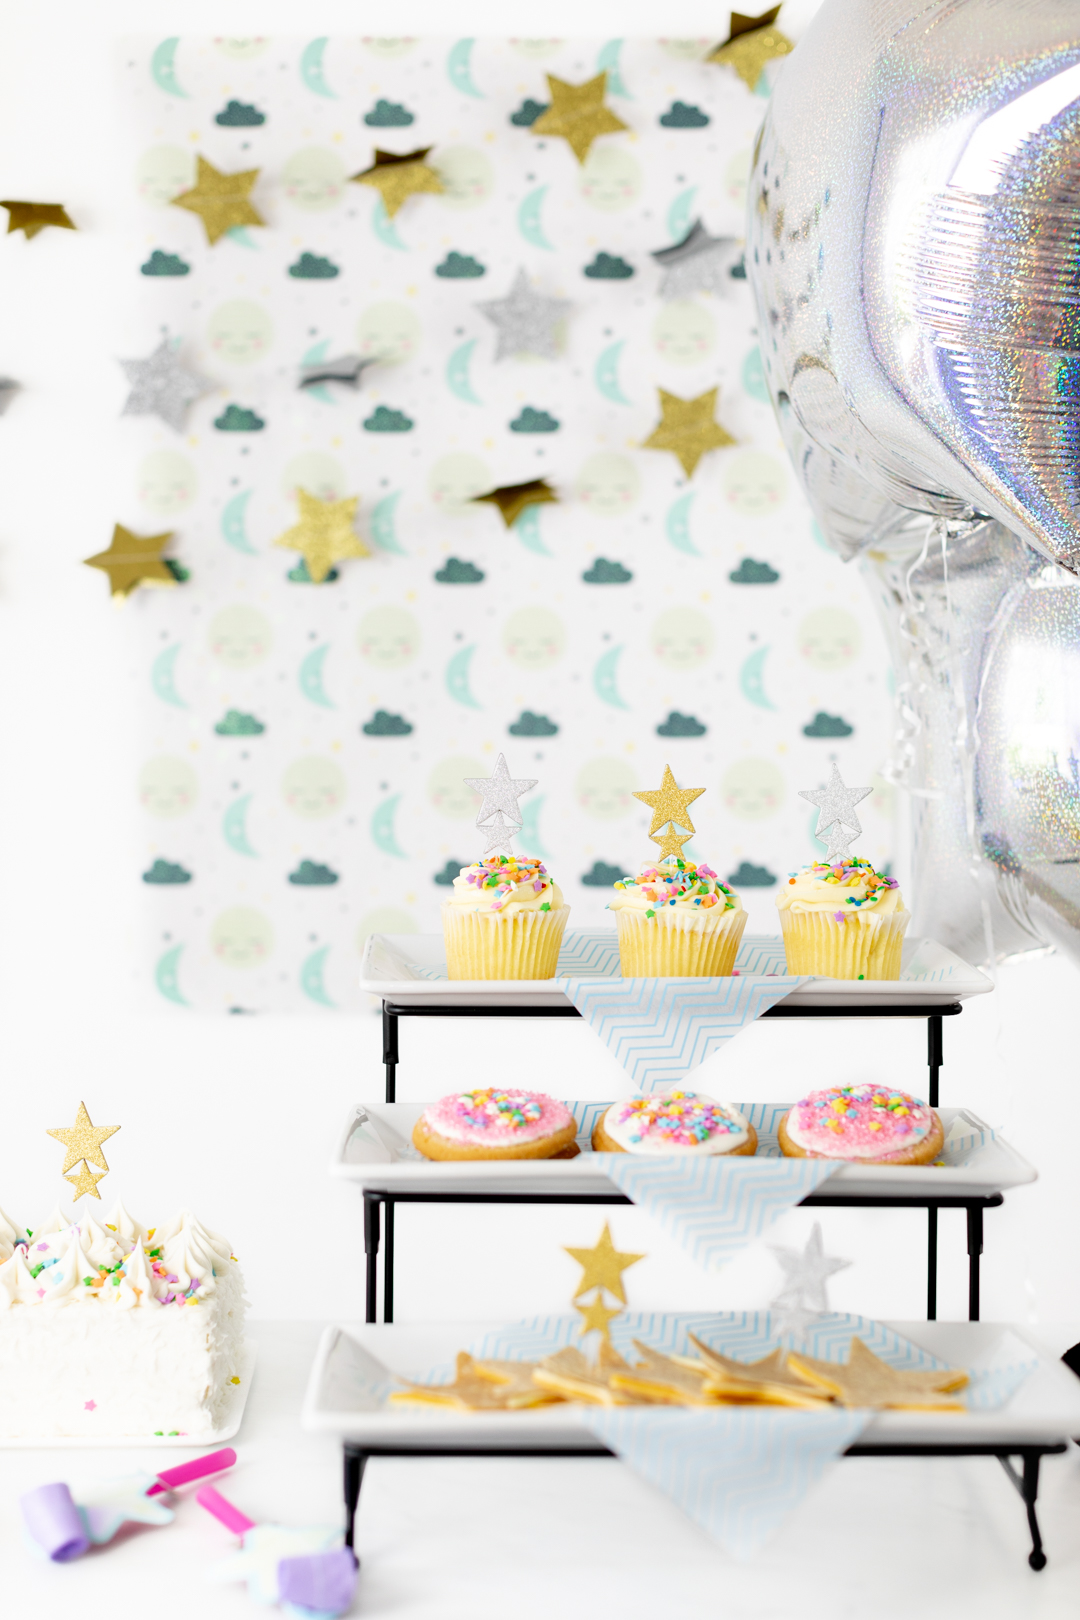 tiered stand with party treats